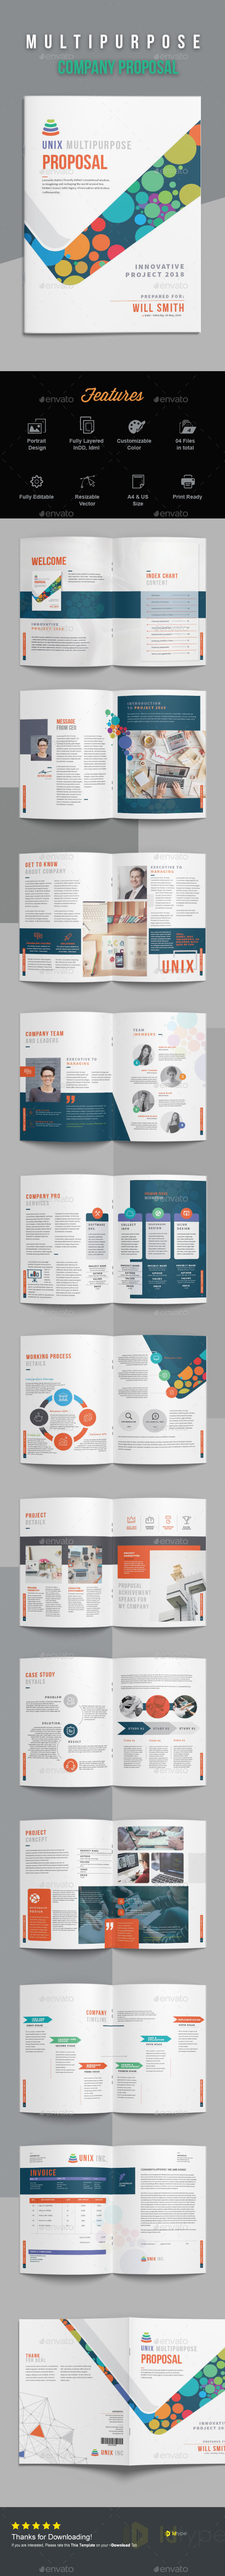 Company Proposal - Proposals & Invoices Stationery